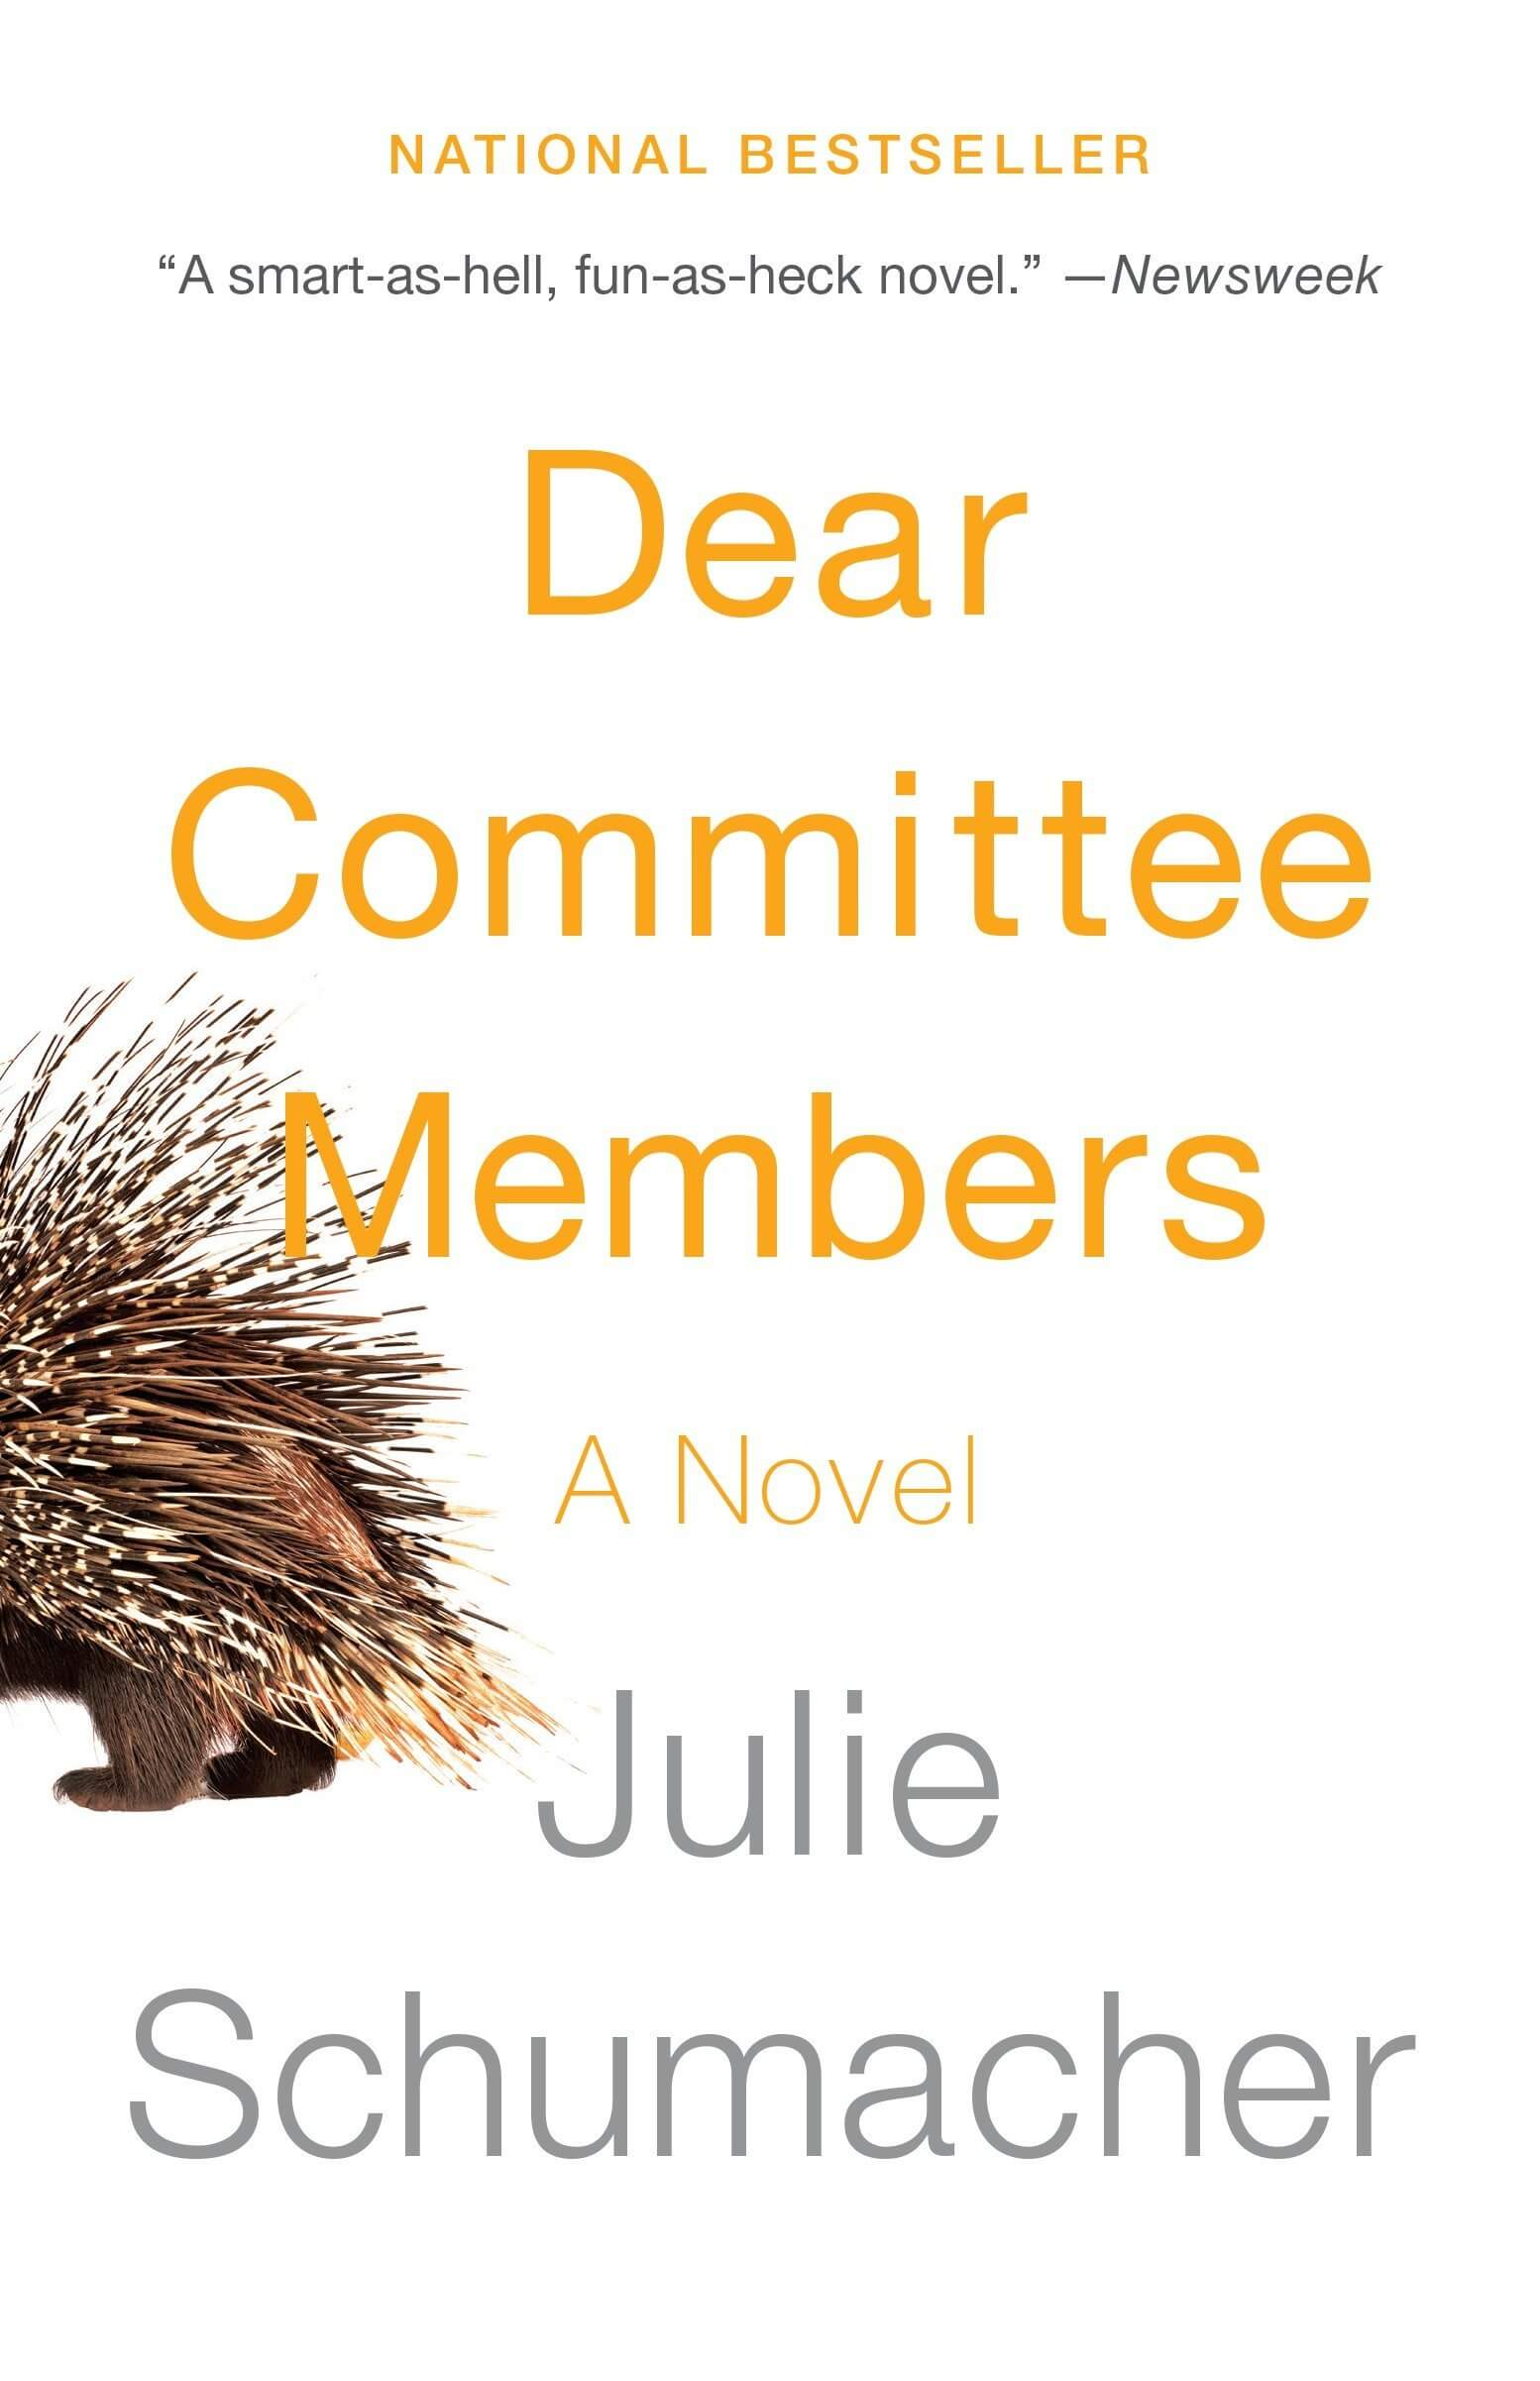 Dear Committee Members book cover image